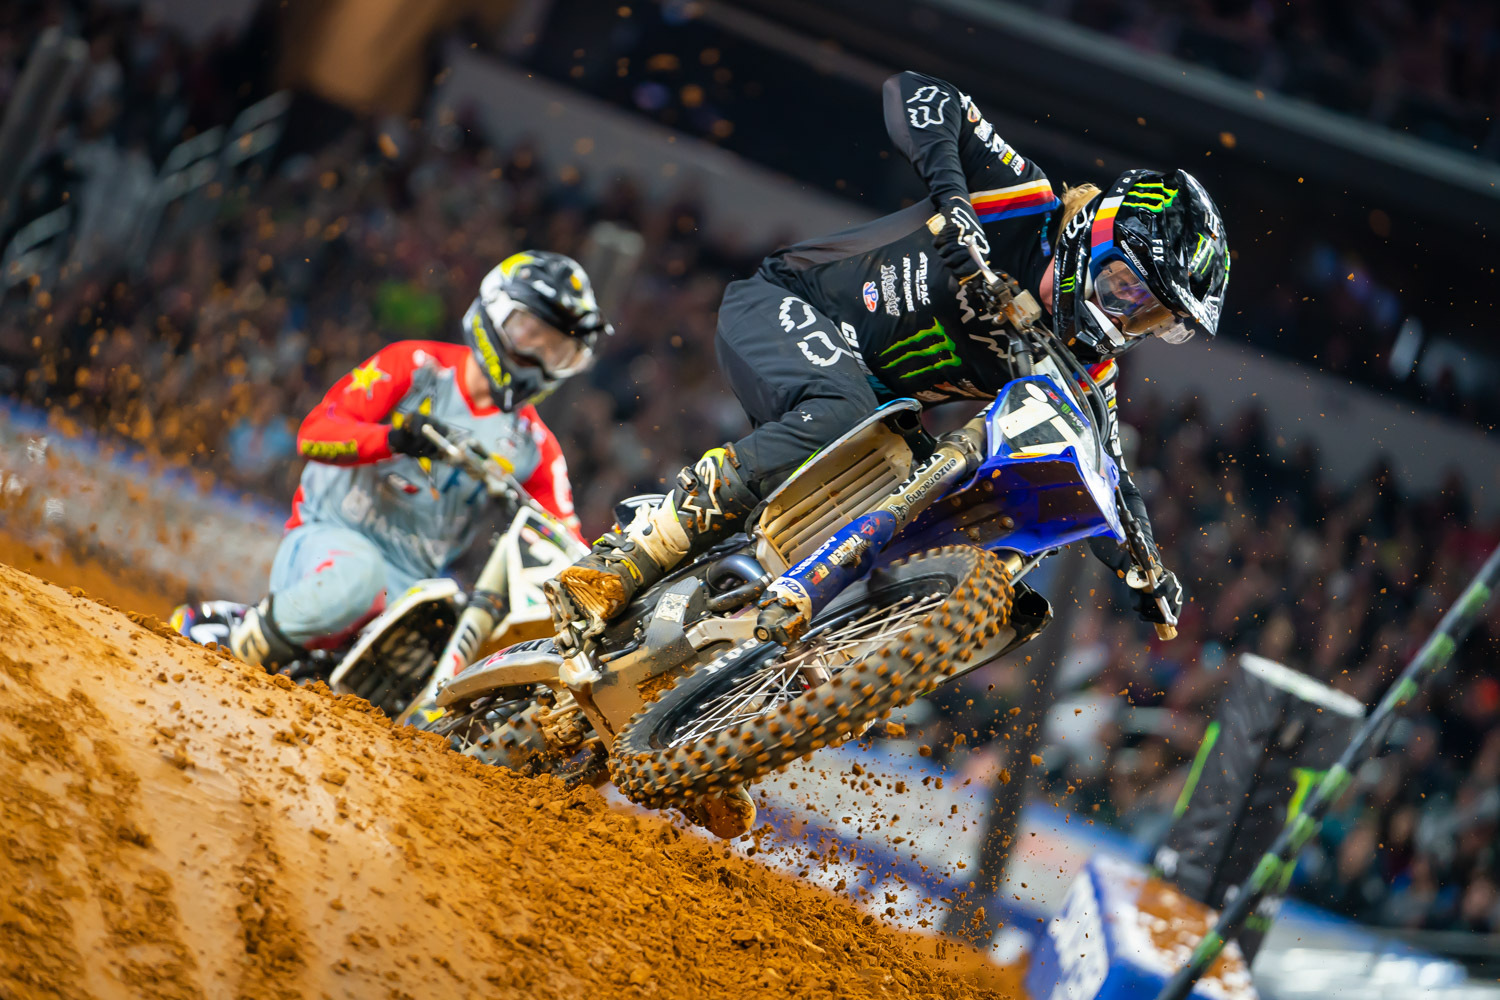 2020-ARLINGTON-SUPERCROSS_KICKSTART_0077